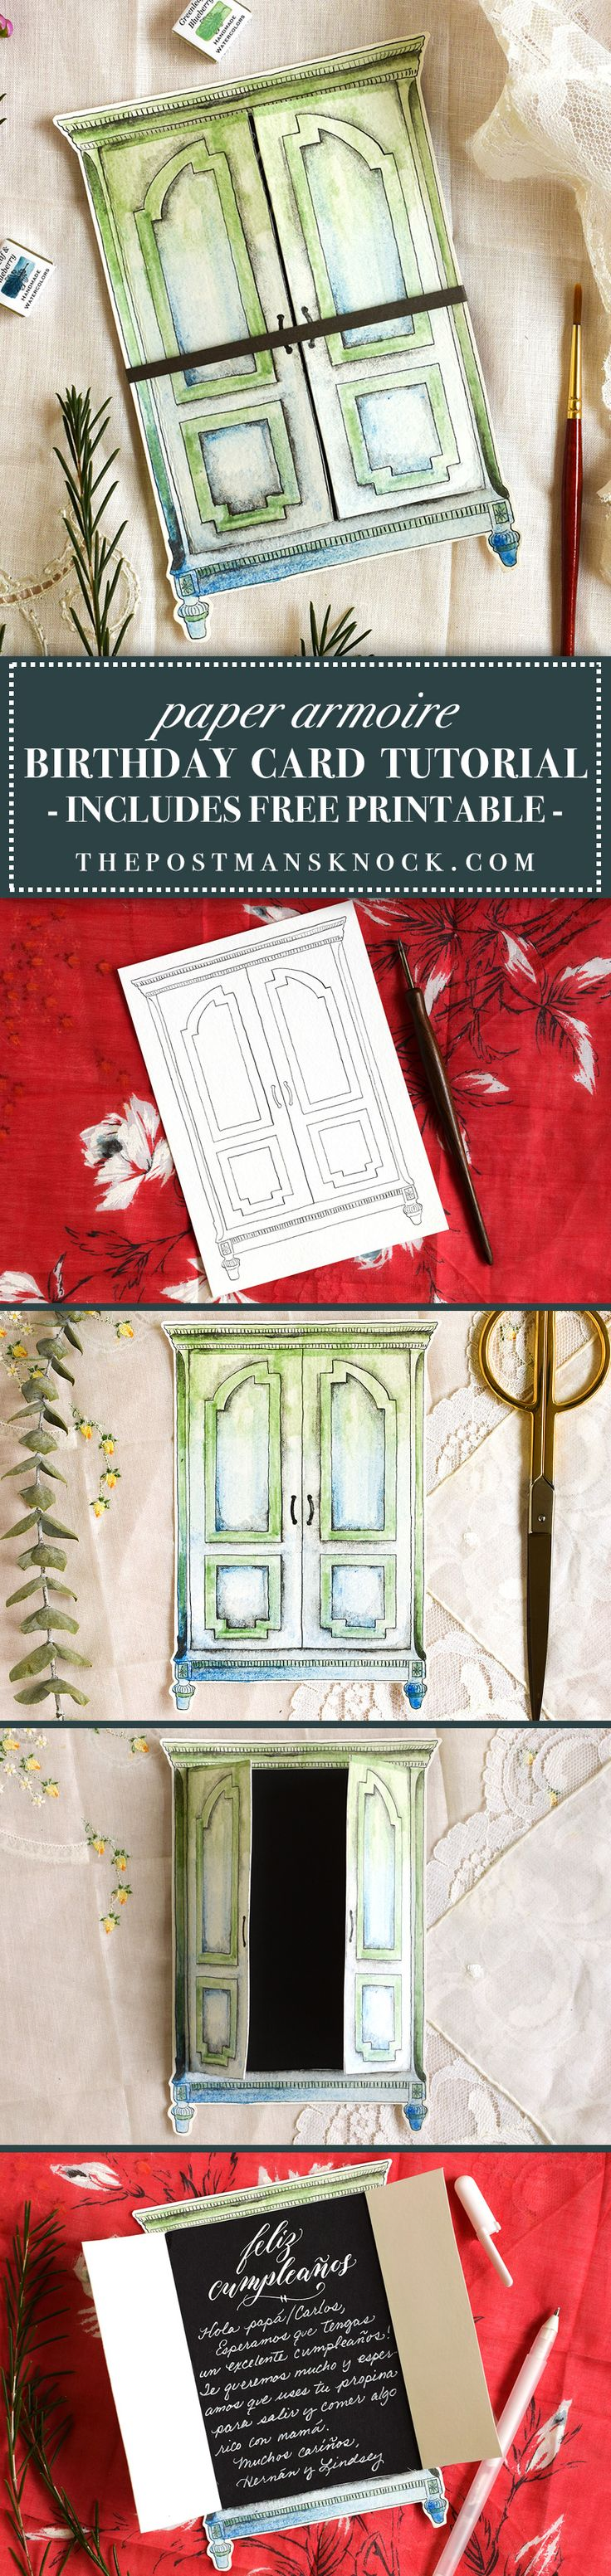 creative birthday card tutorial paper armoire